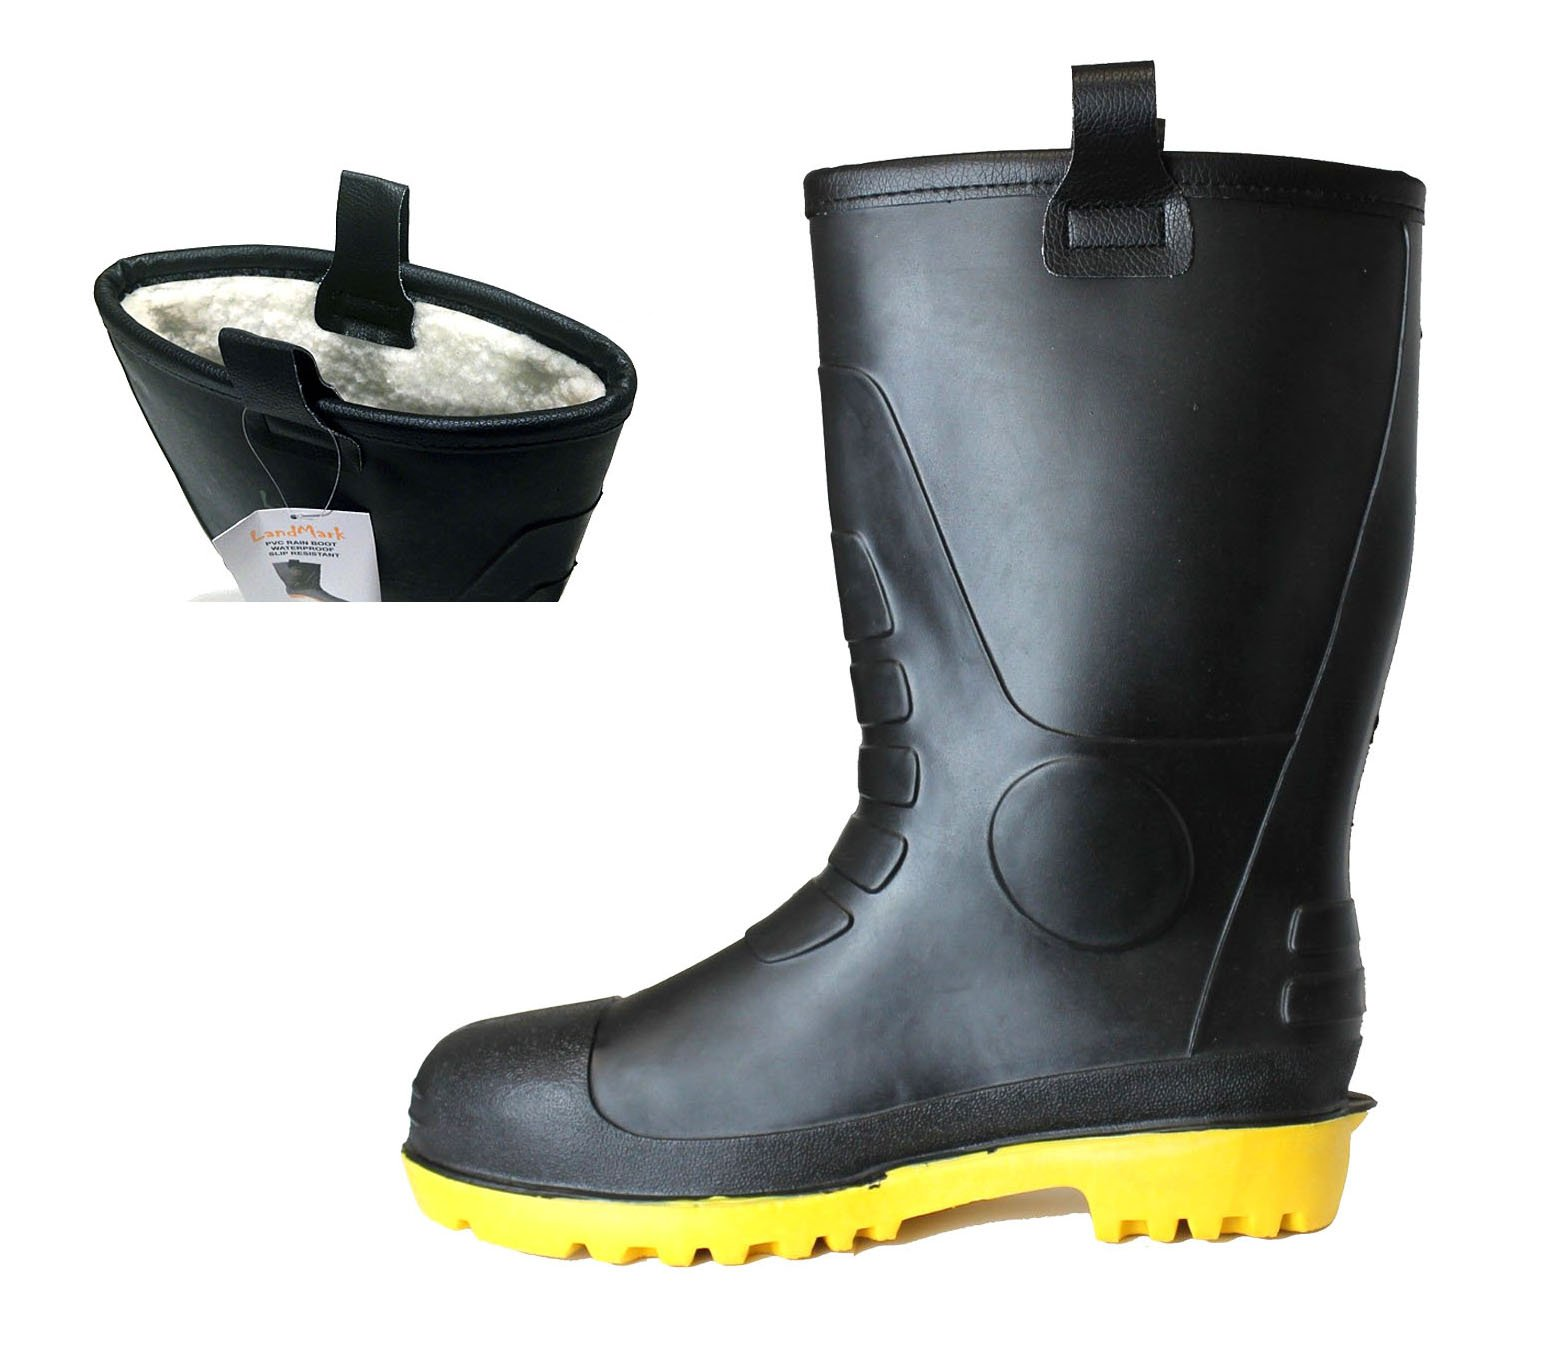 LM Mens Waterproof Fur Interior Rubber Sole Winter Snow Rain Boots Insulated (9)